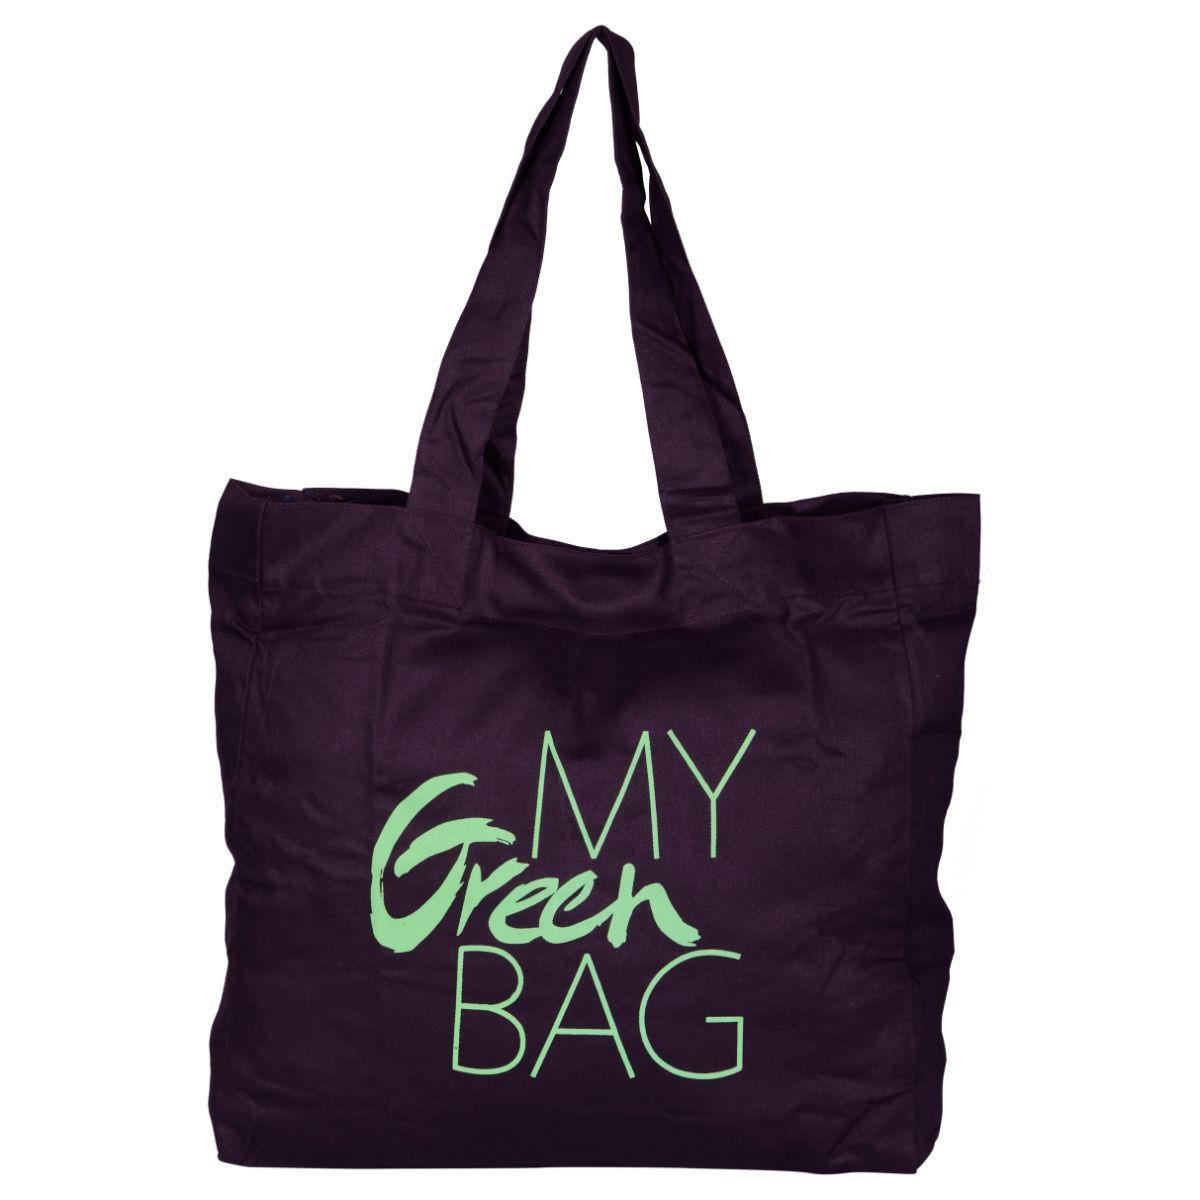 My Green bag